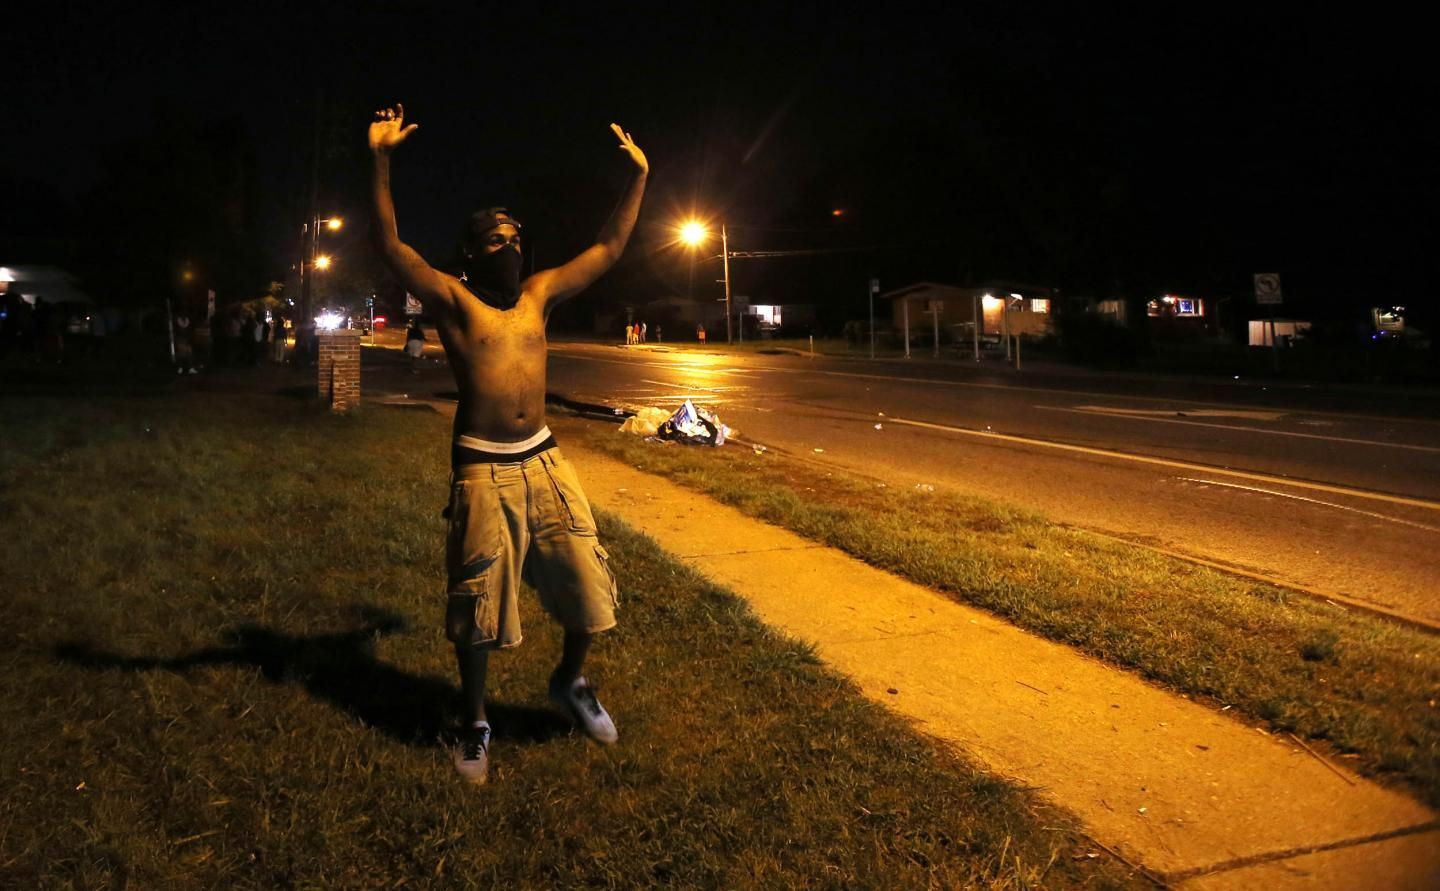 photos ferguson missouri looks like a war zone